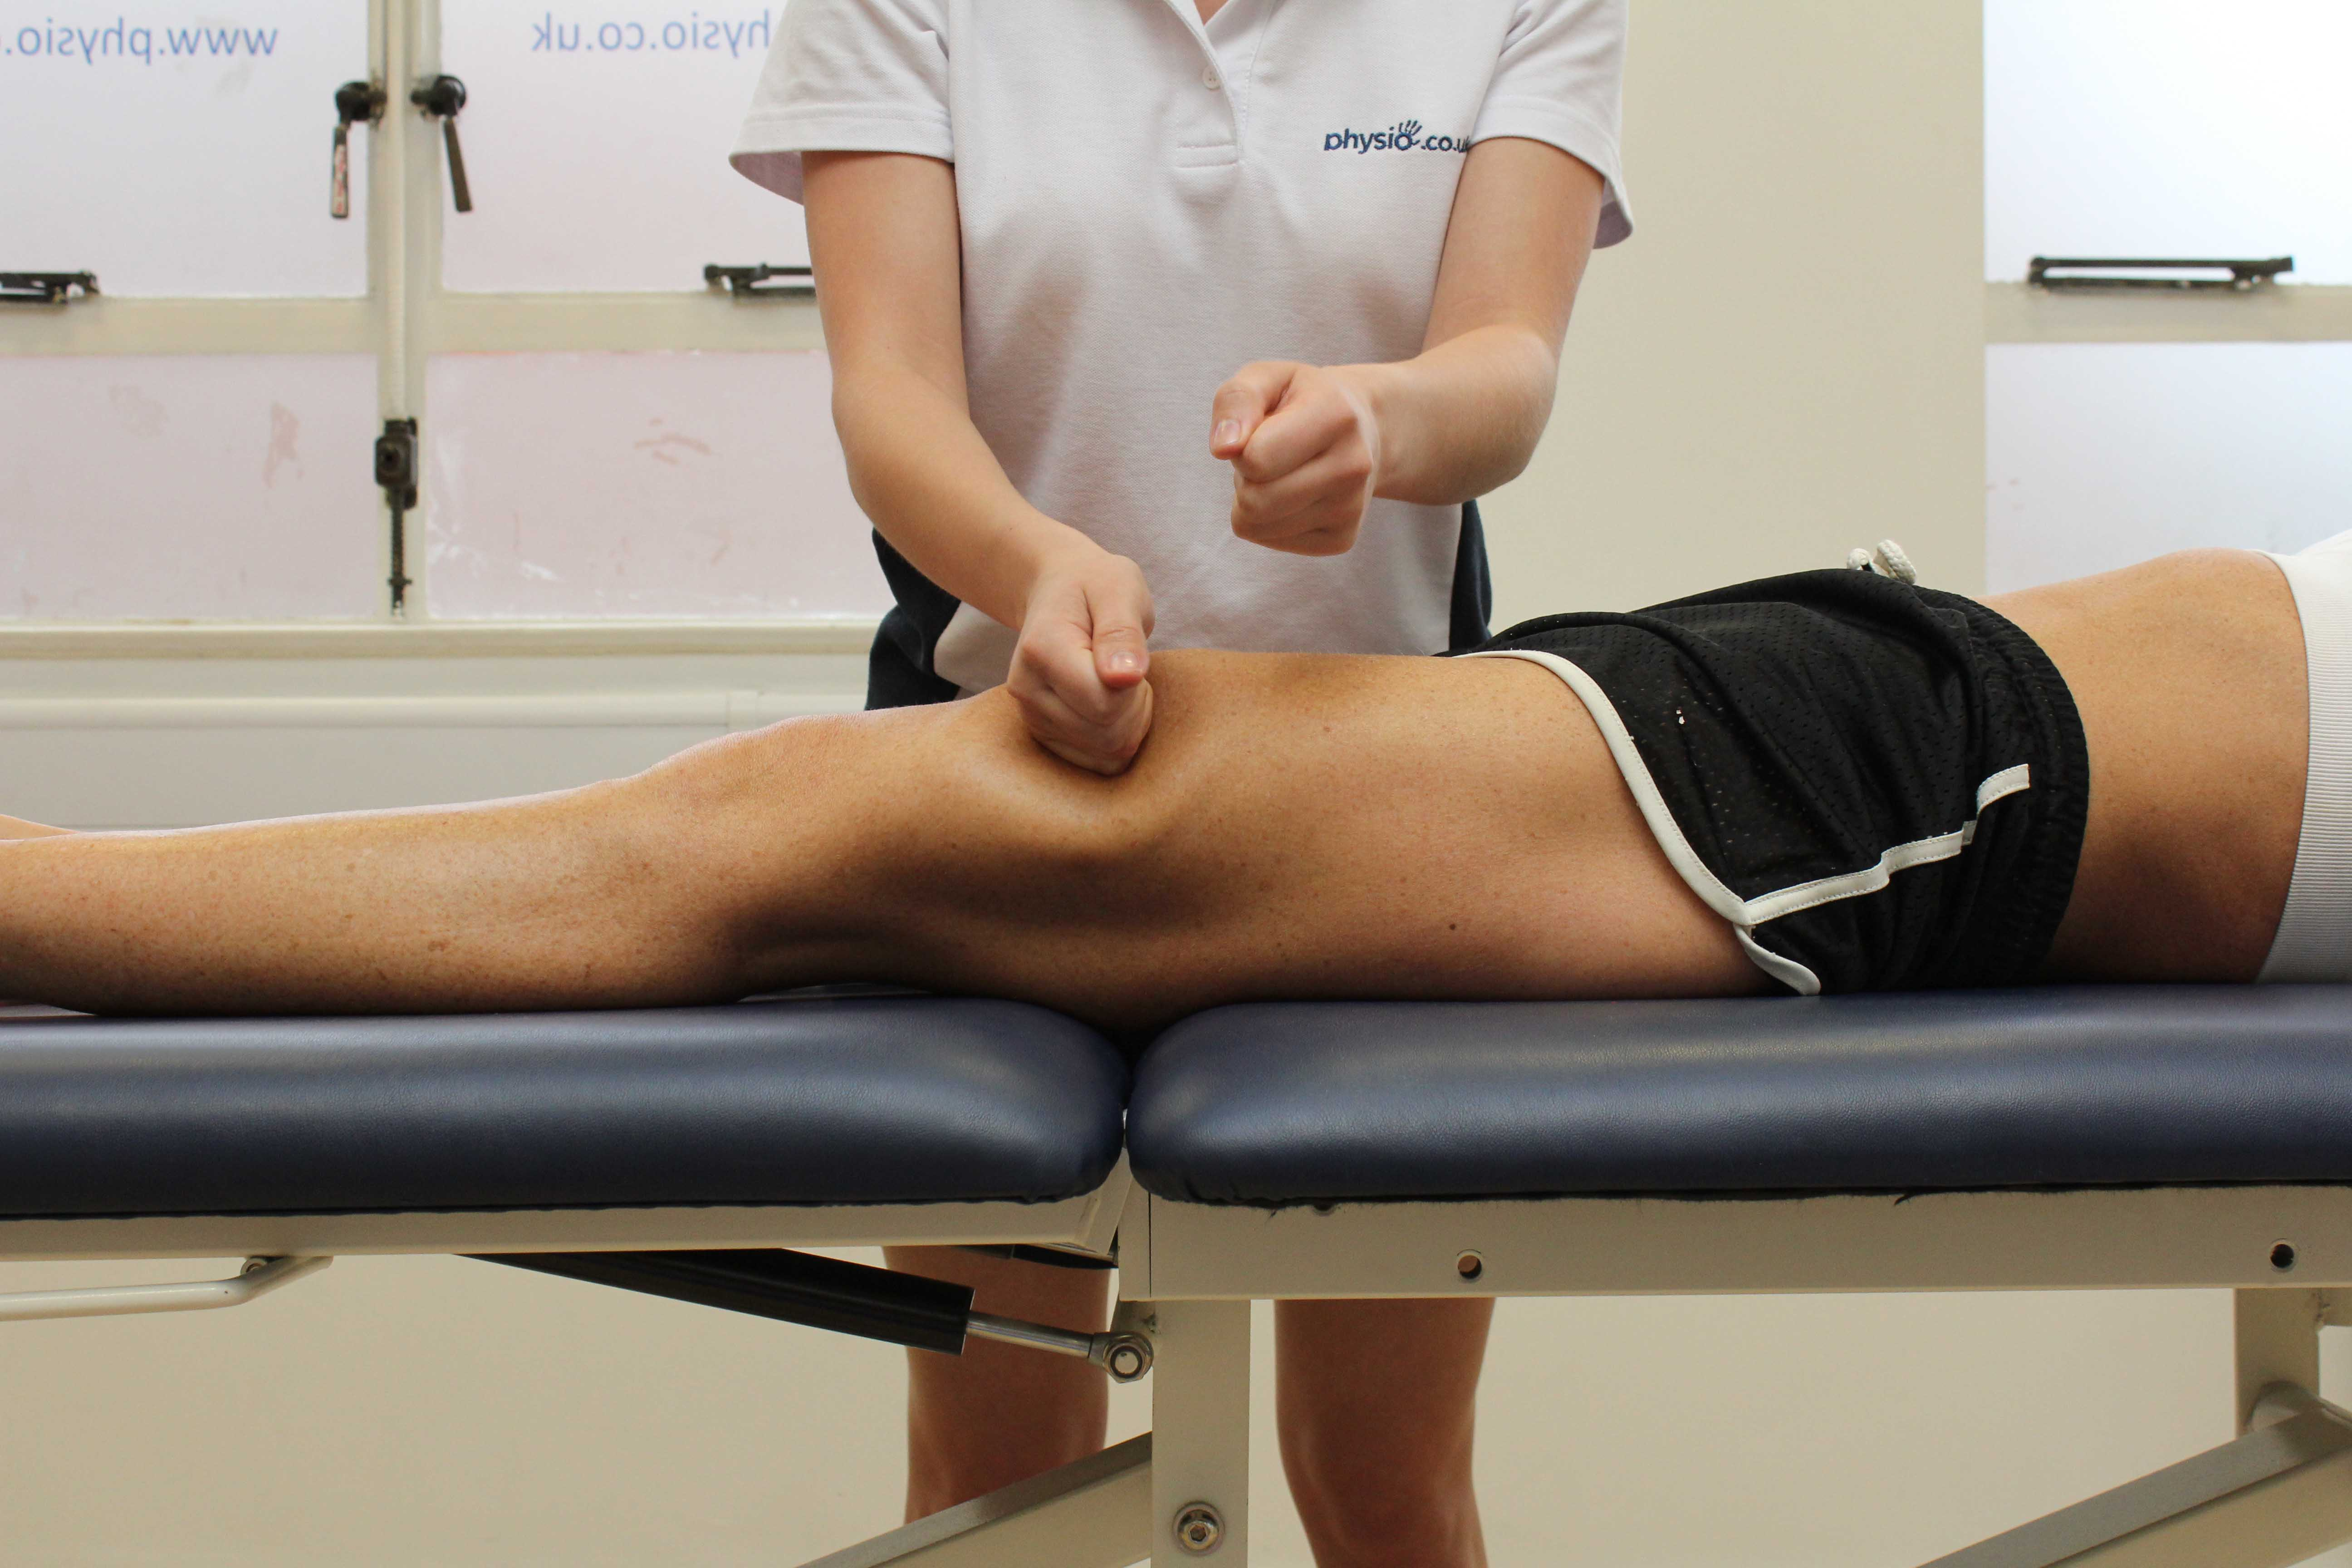 Beating percussion massage technique applied to rectus femoris muscle